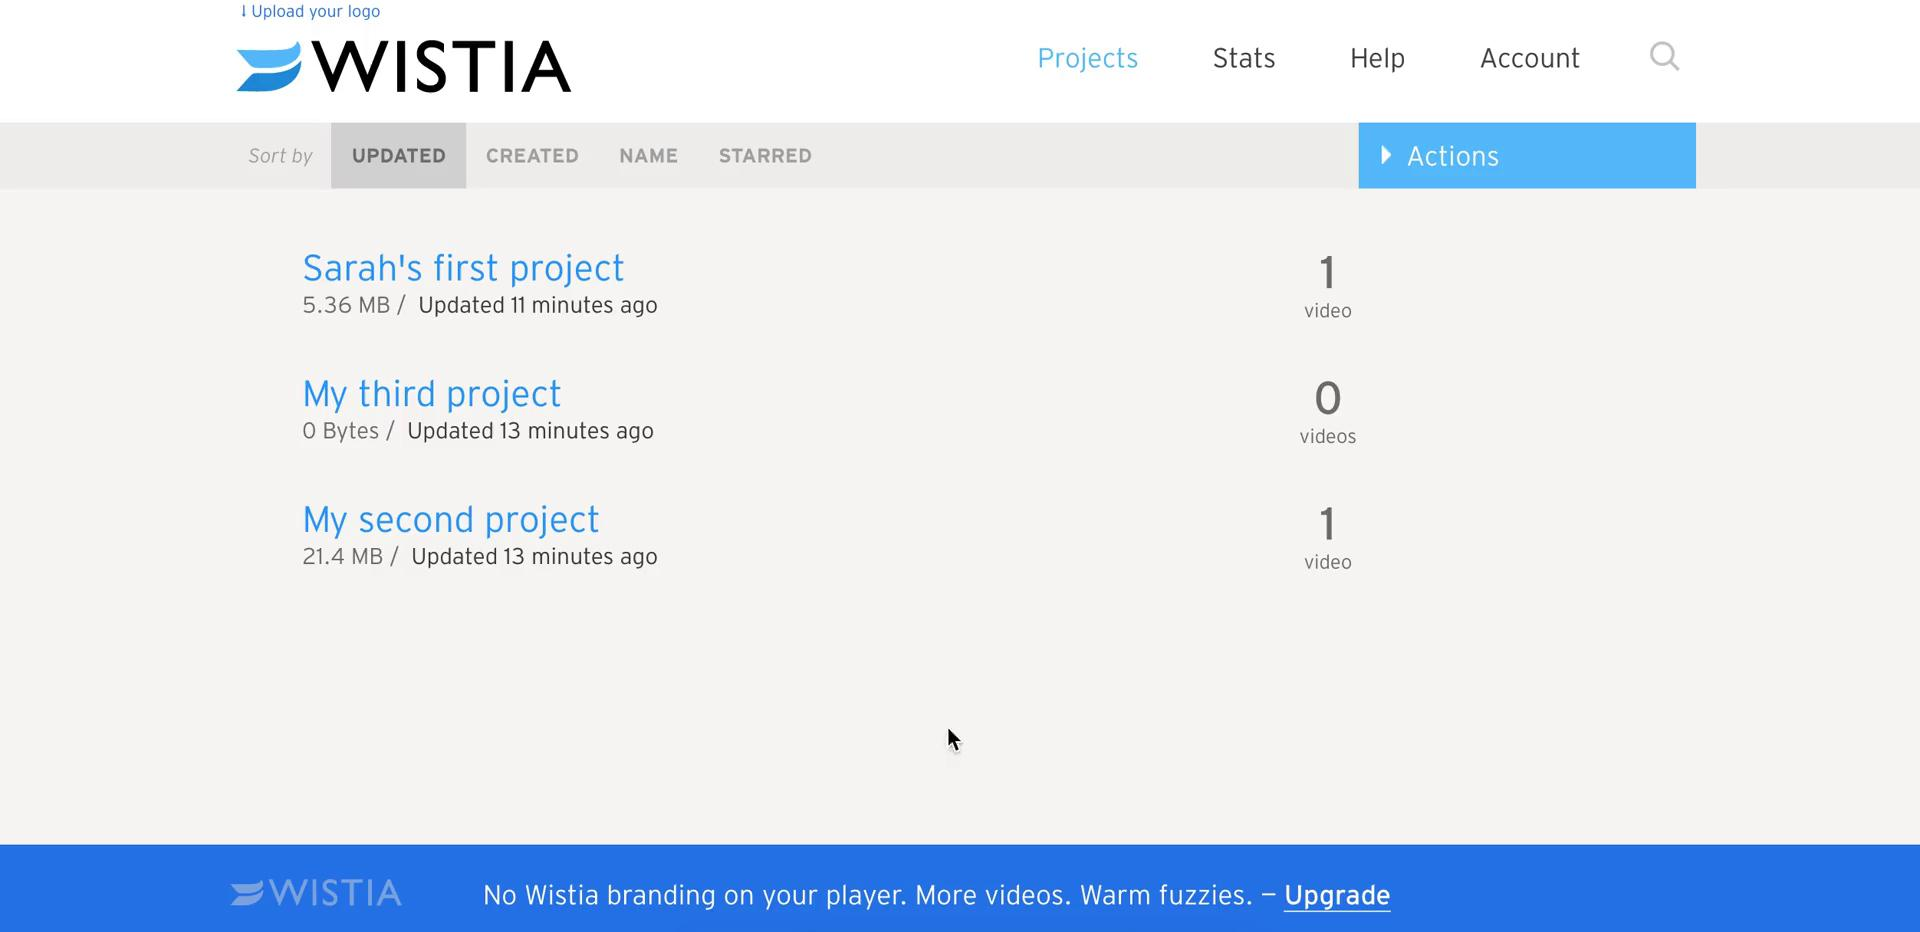 Screenshot of Projects during General browsing on Wistia user flow